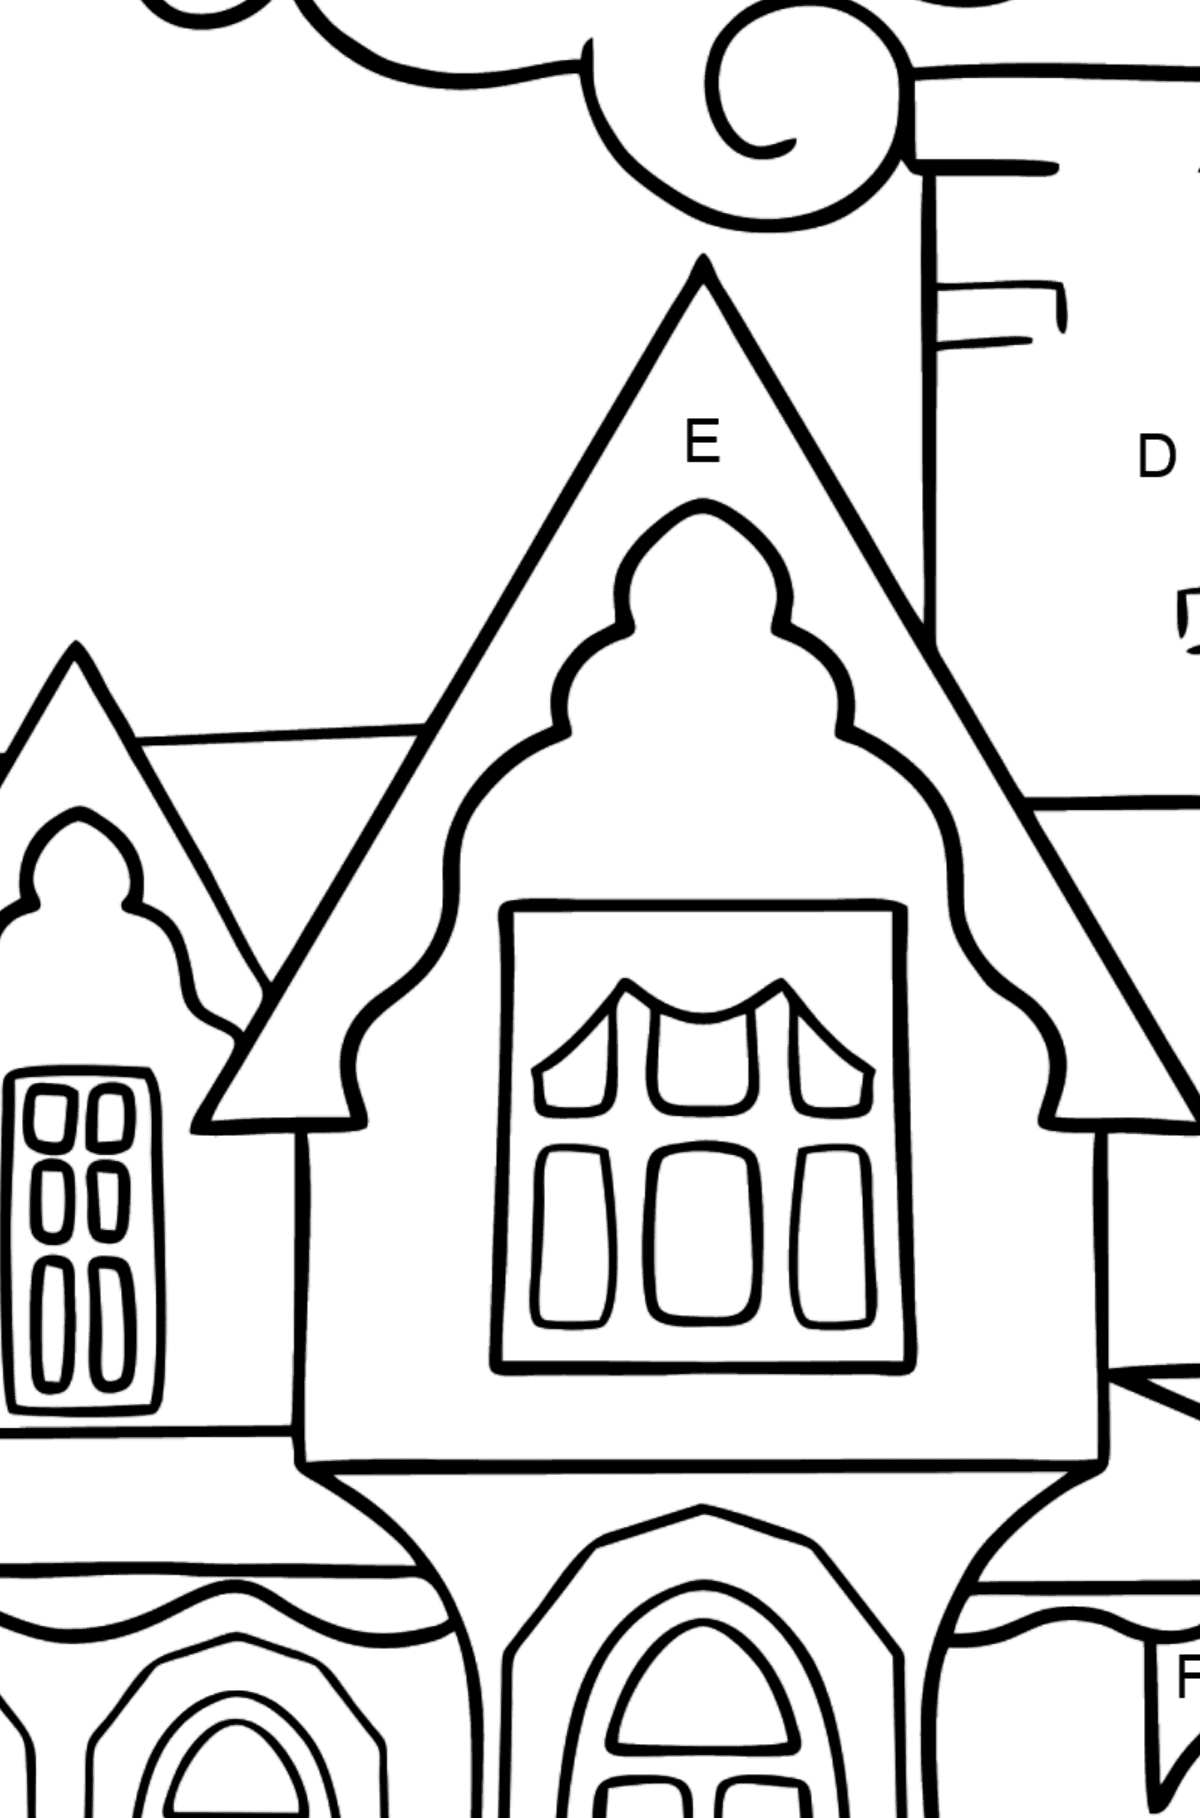 Simple Coloring Page - A Miraculous House - Coloring by Letters for Kids